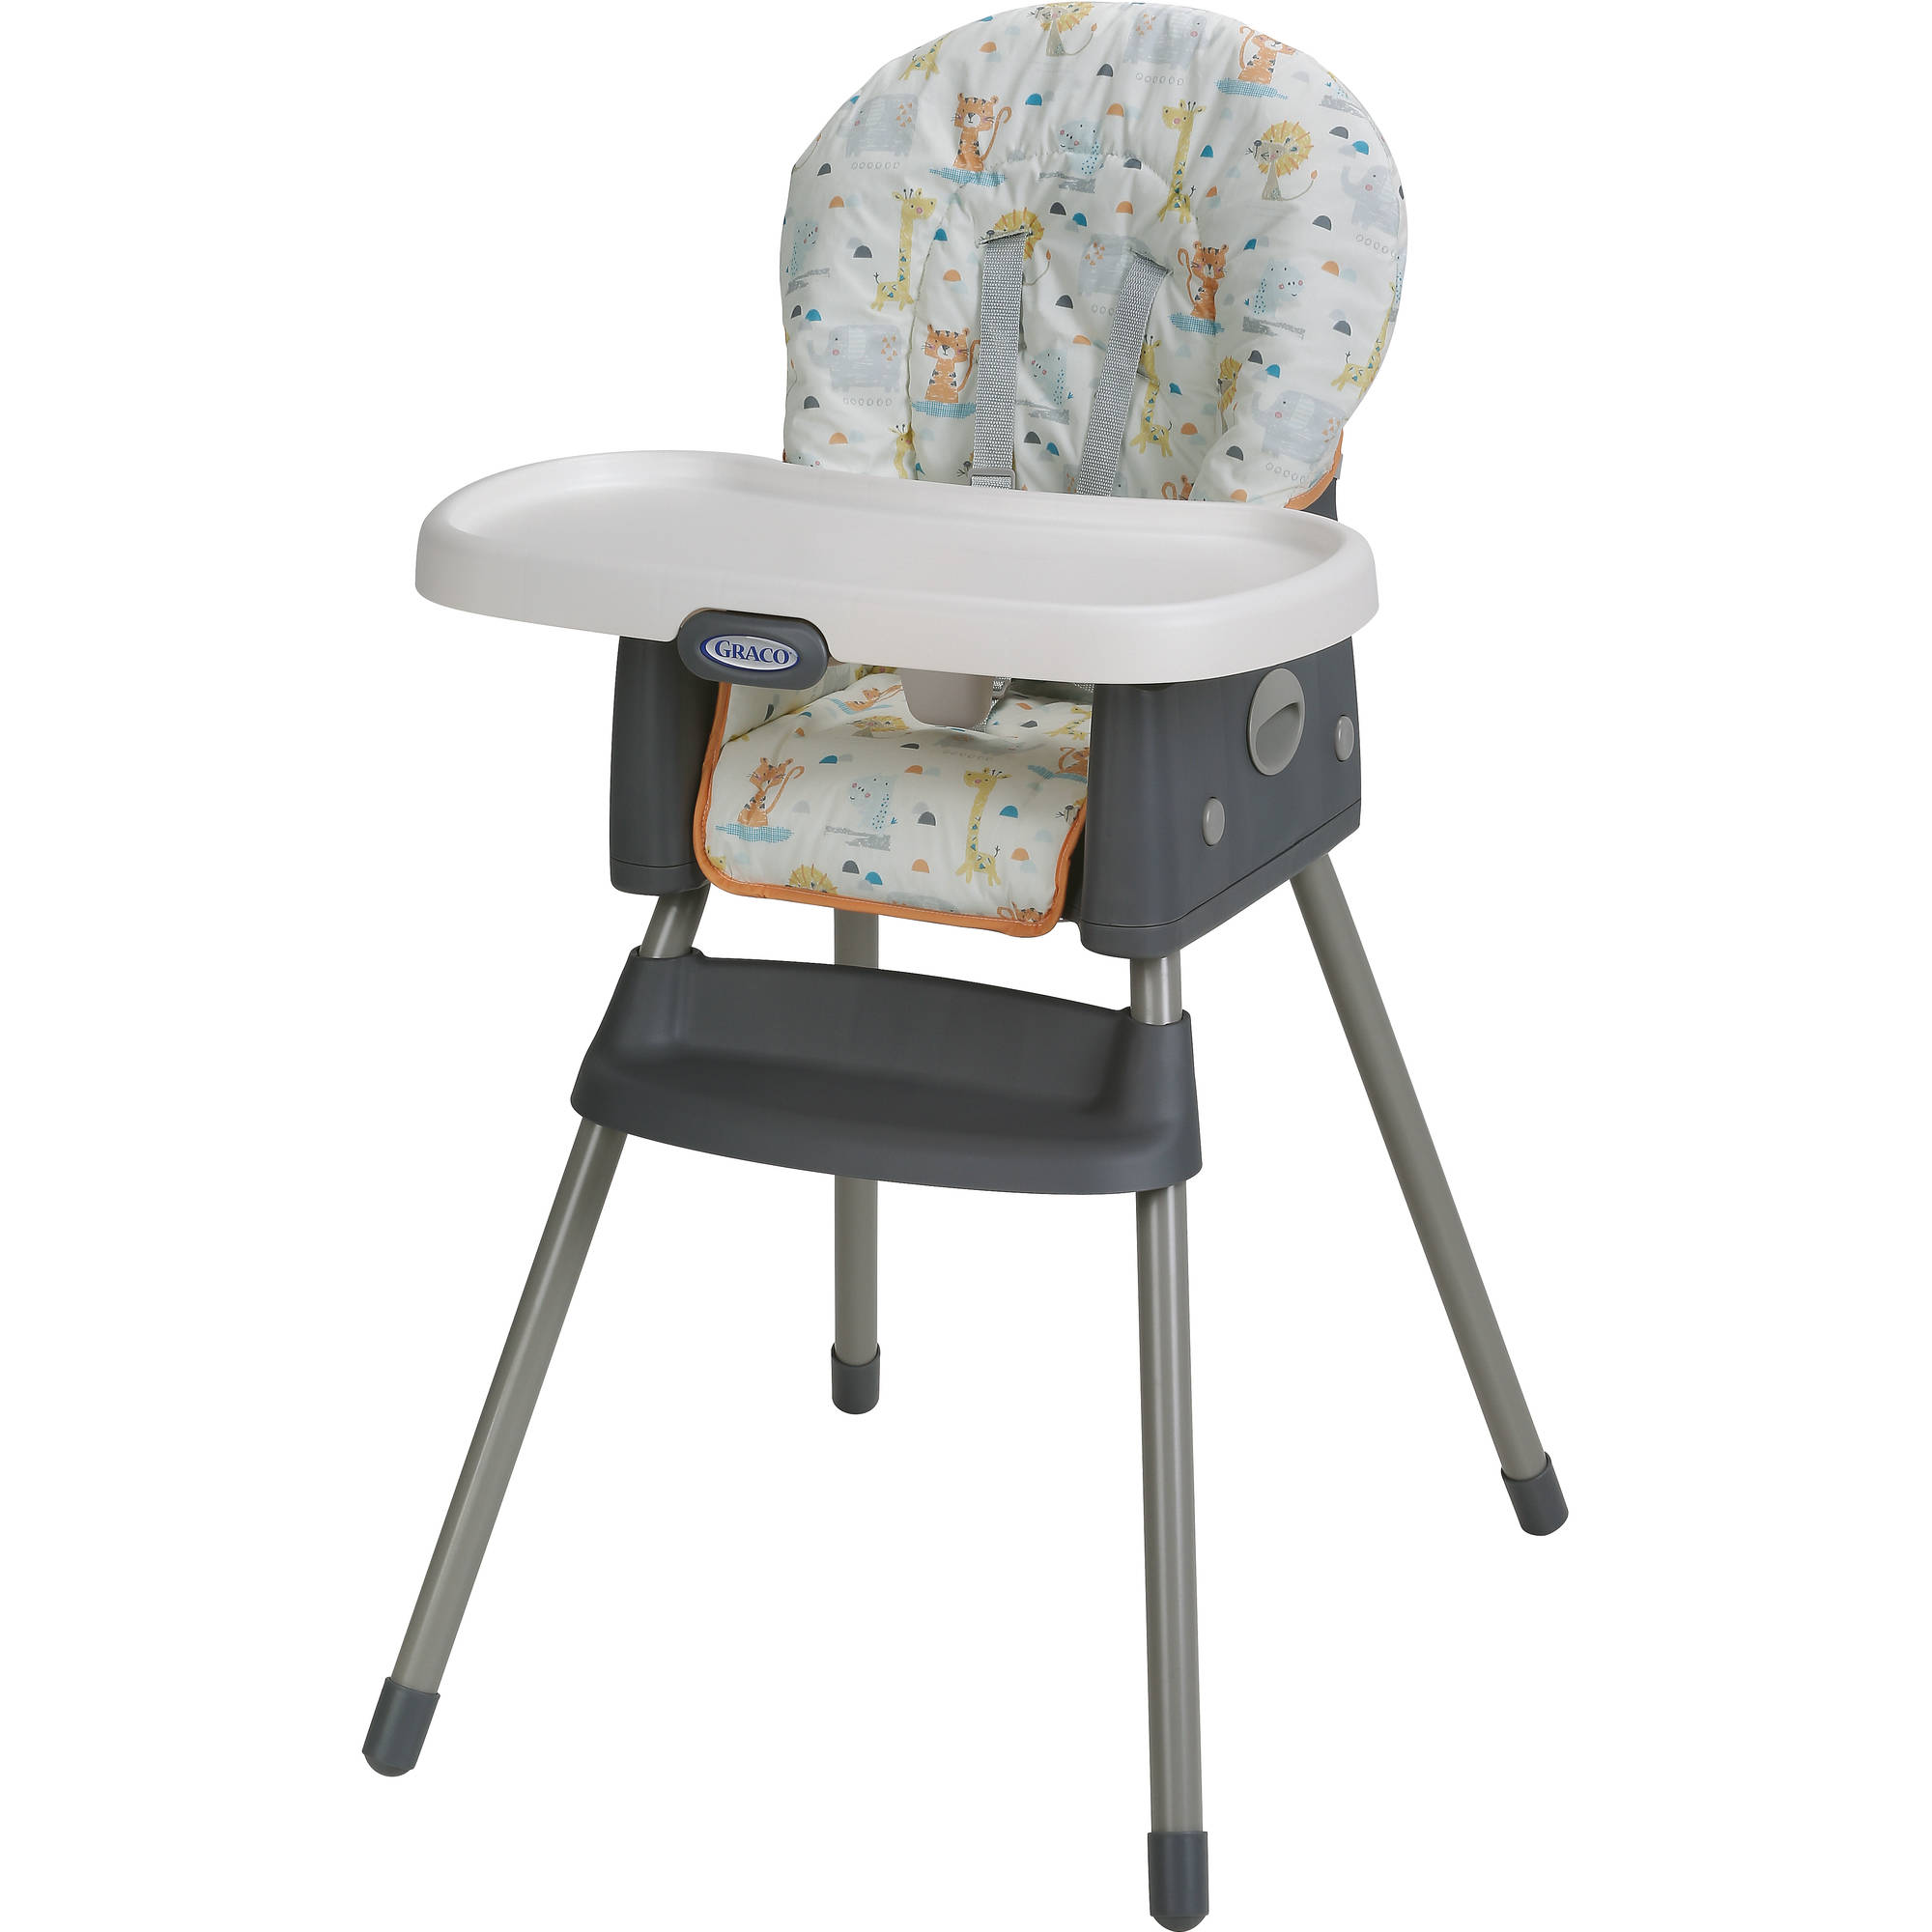 Graco SimpleSwitch Convertible High Chair, Linus